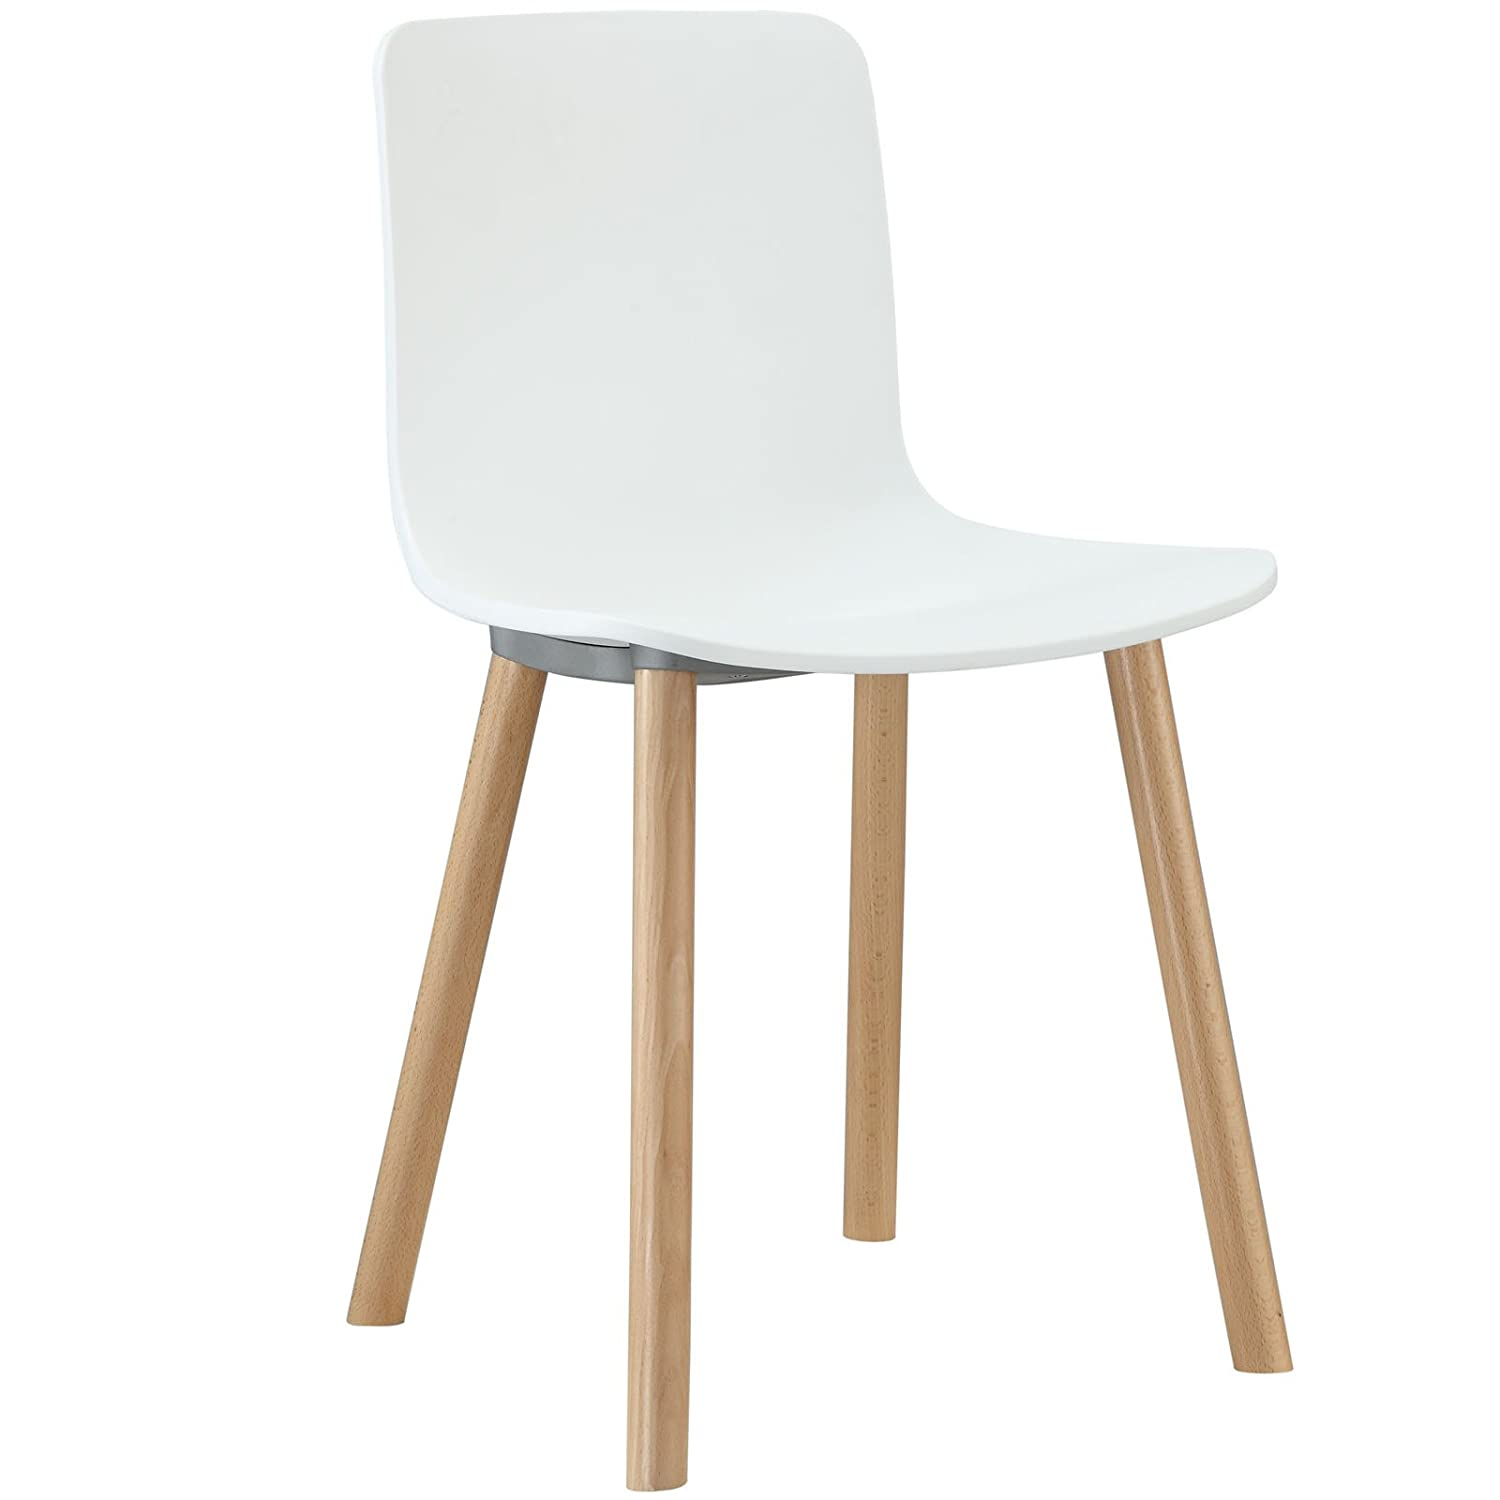 Amazon Modway Sprung Dining Side Chair in White Chairs